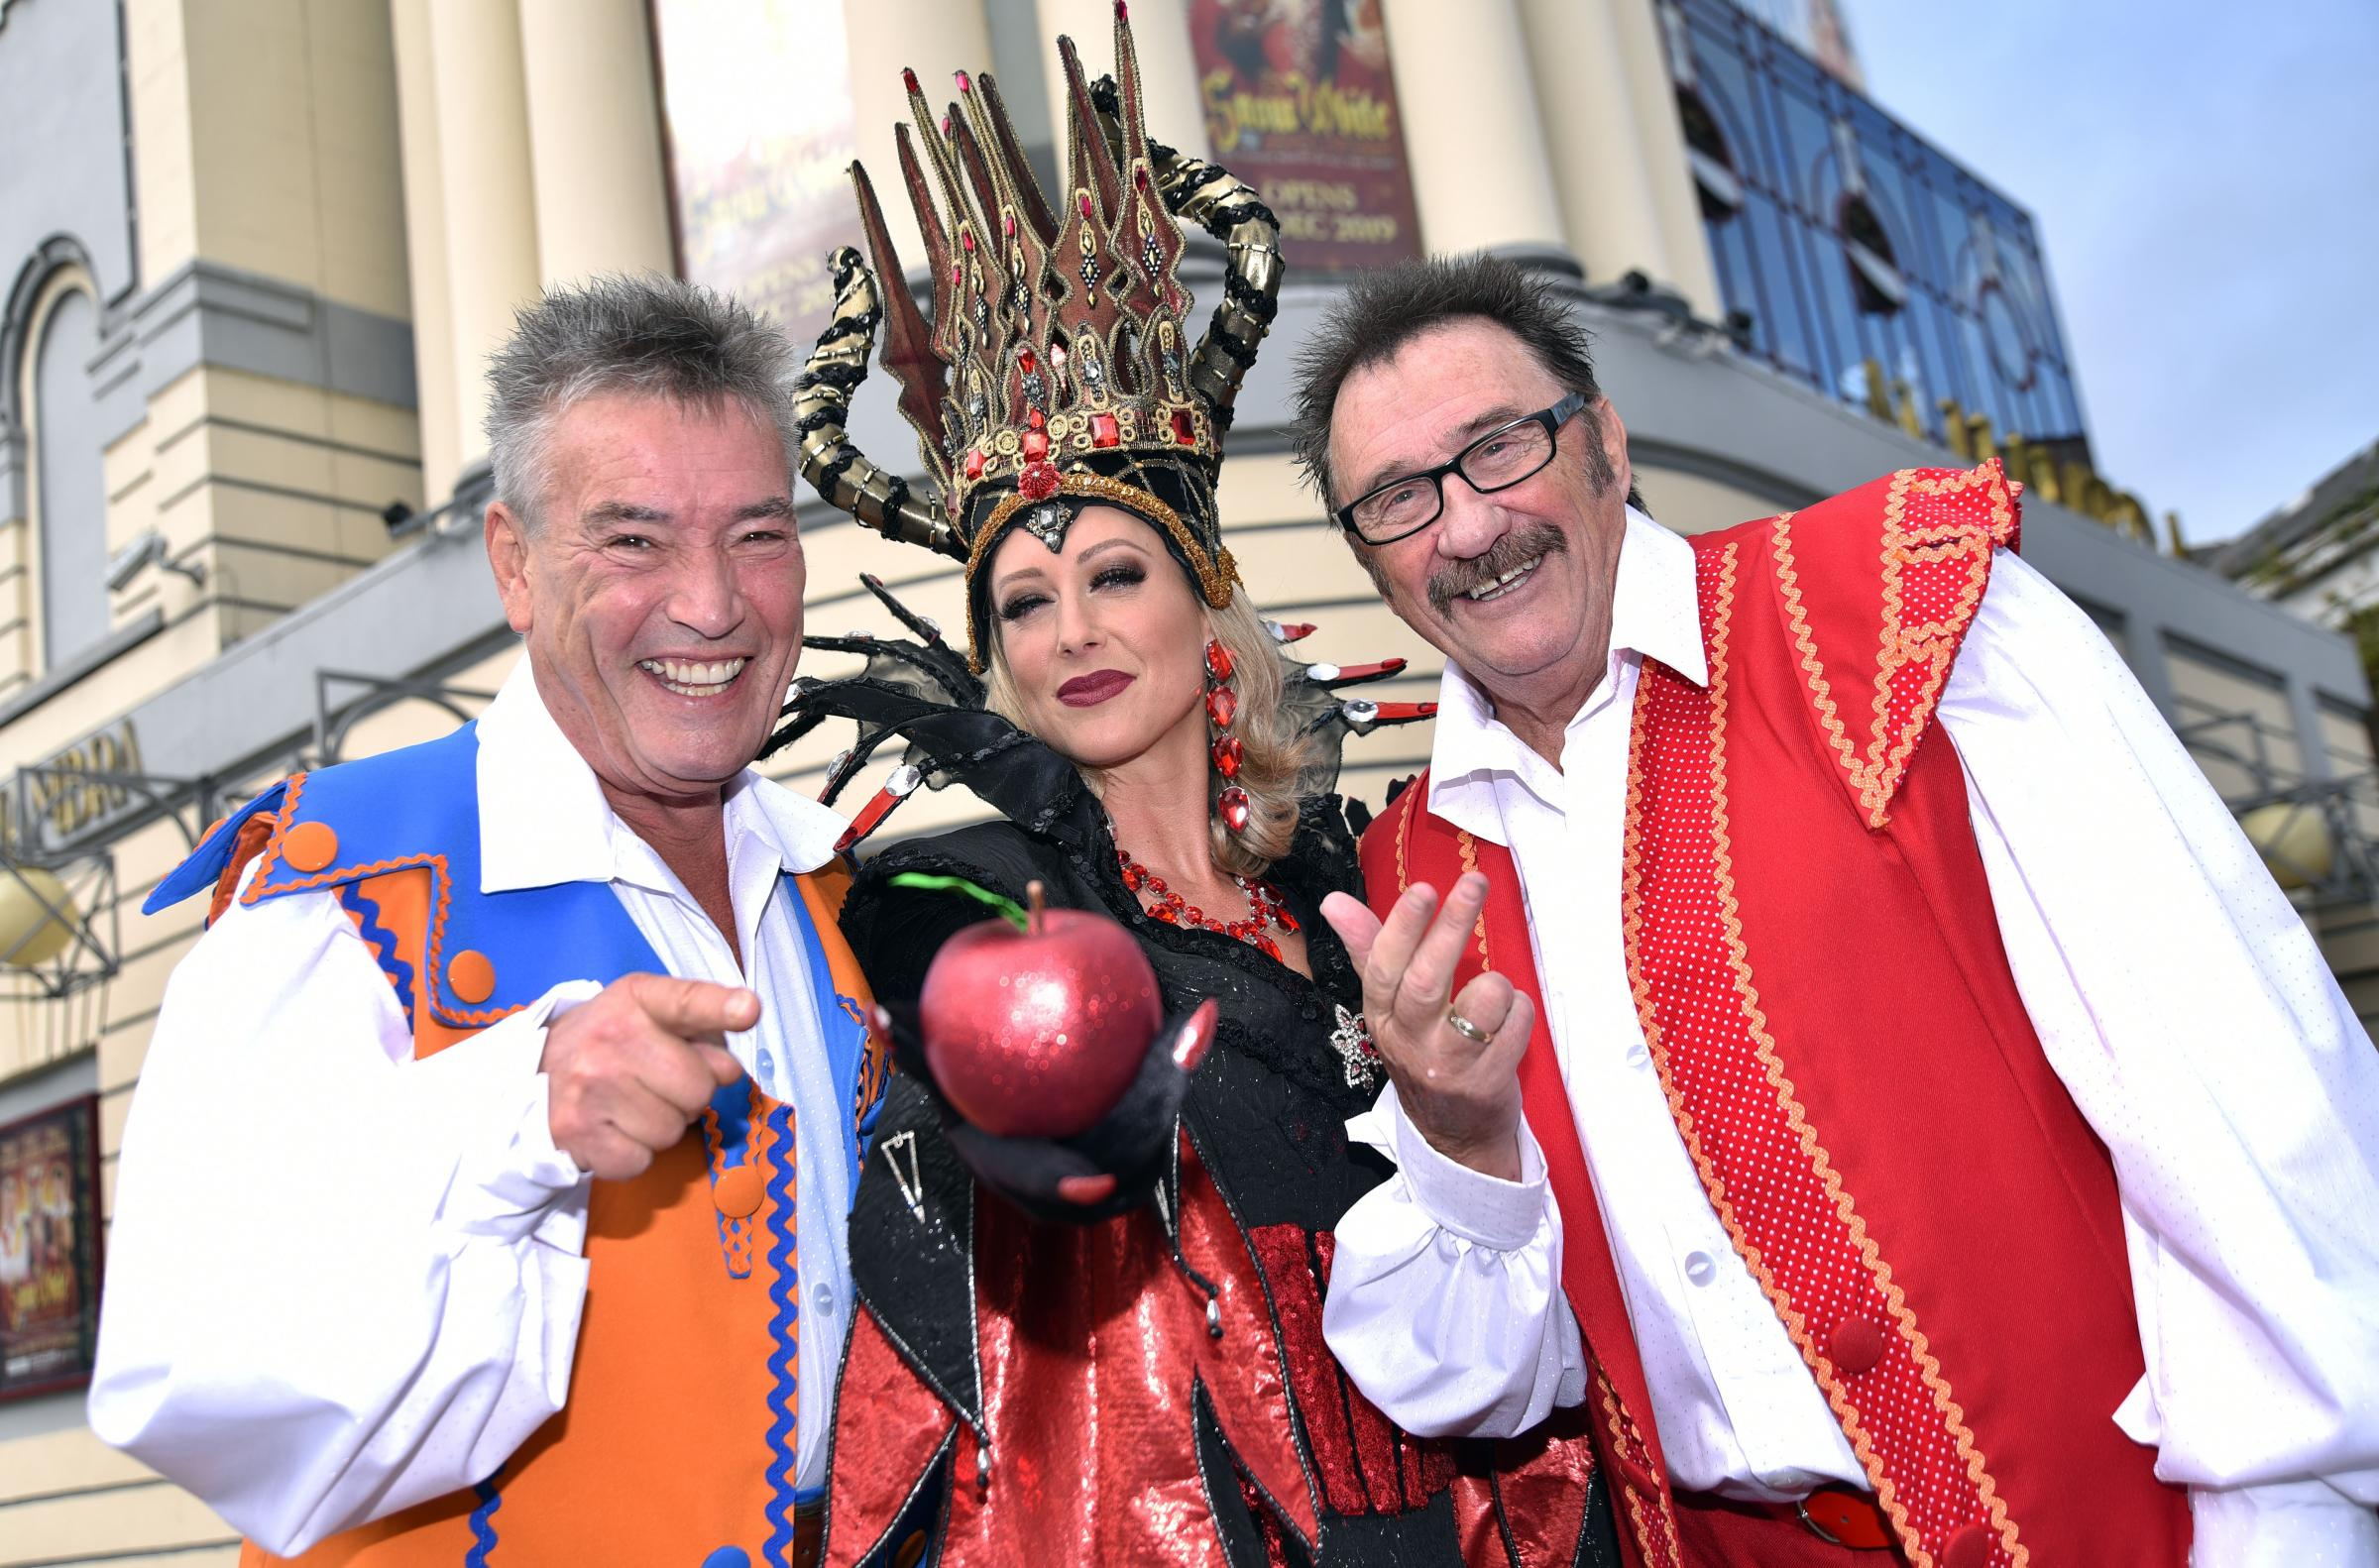 Steps star says being a baddie is more fun in Alhambra panto